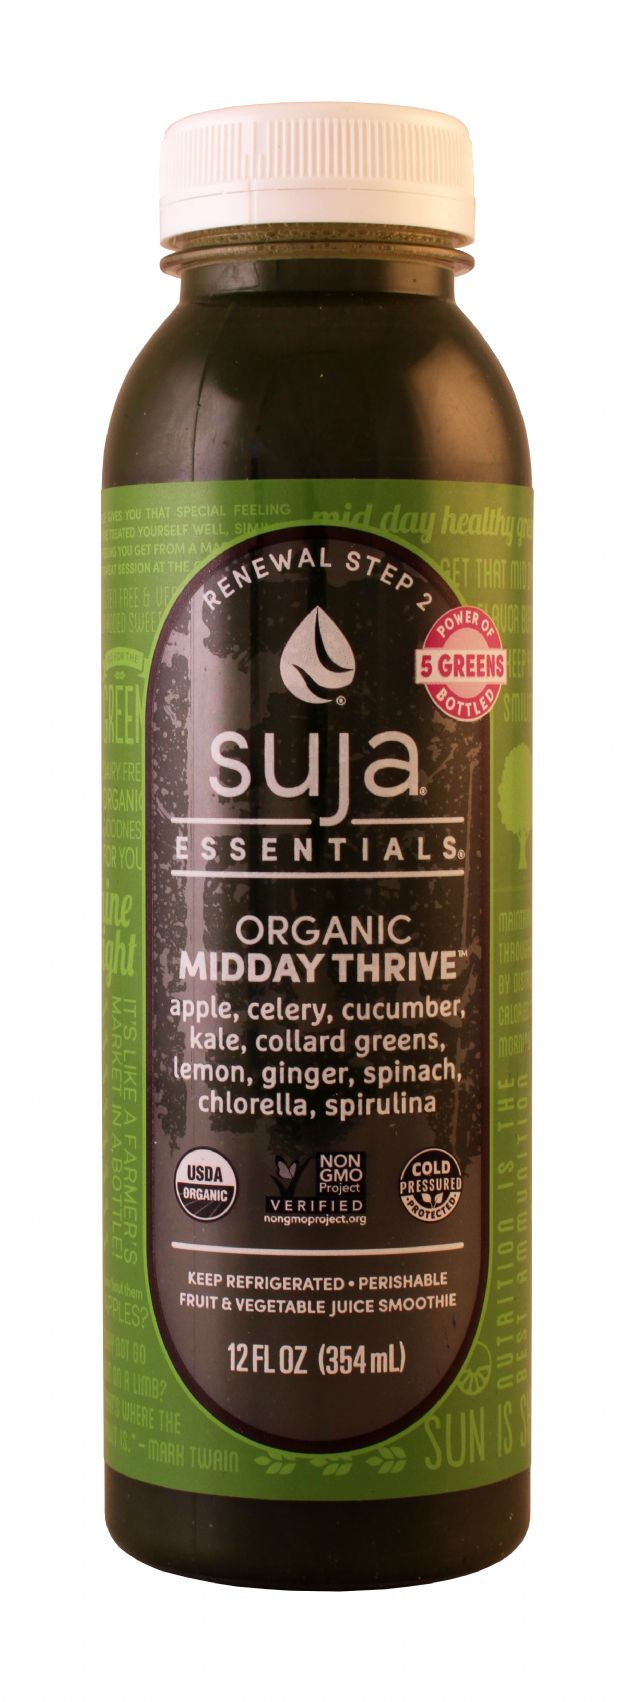 Suja Essentials: Suja Midday Fronty